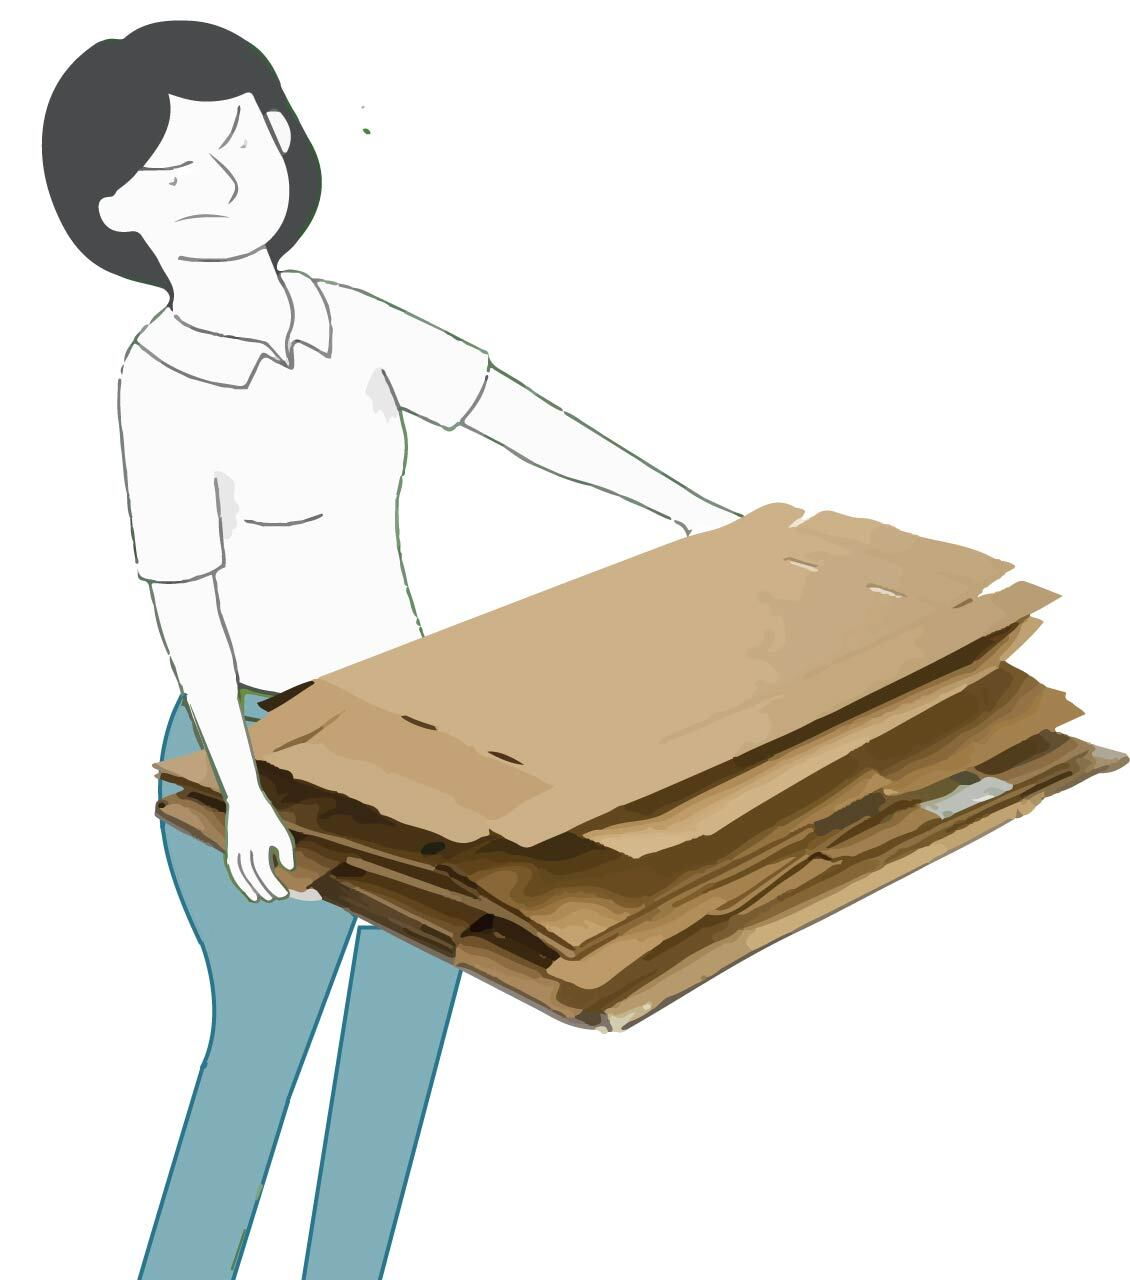 Easy Cardboard Disposal Services in Chicago IL